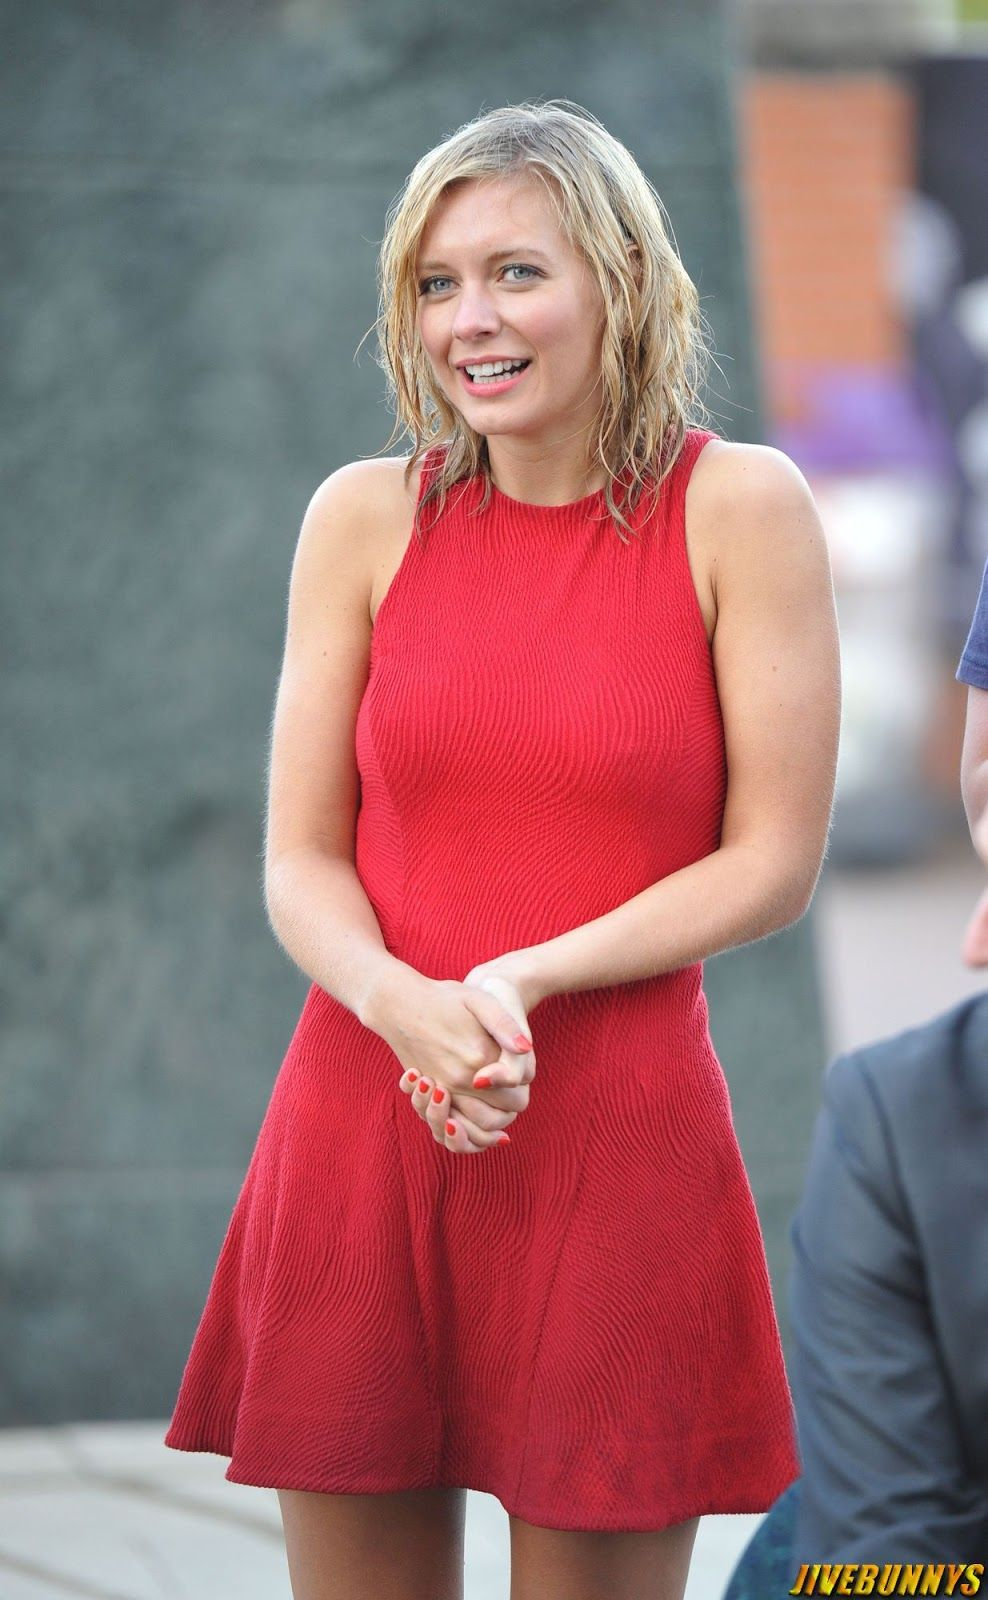 rachel riley - photo #48